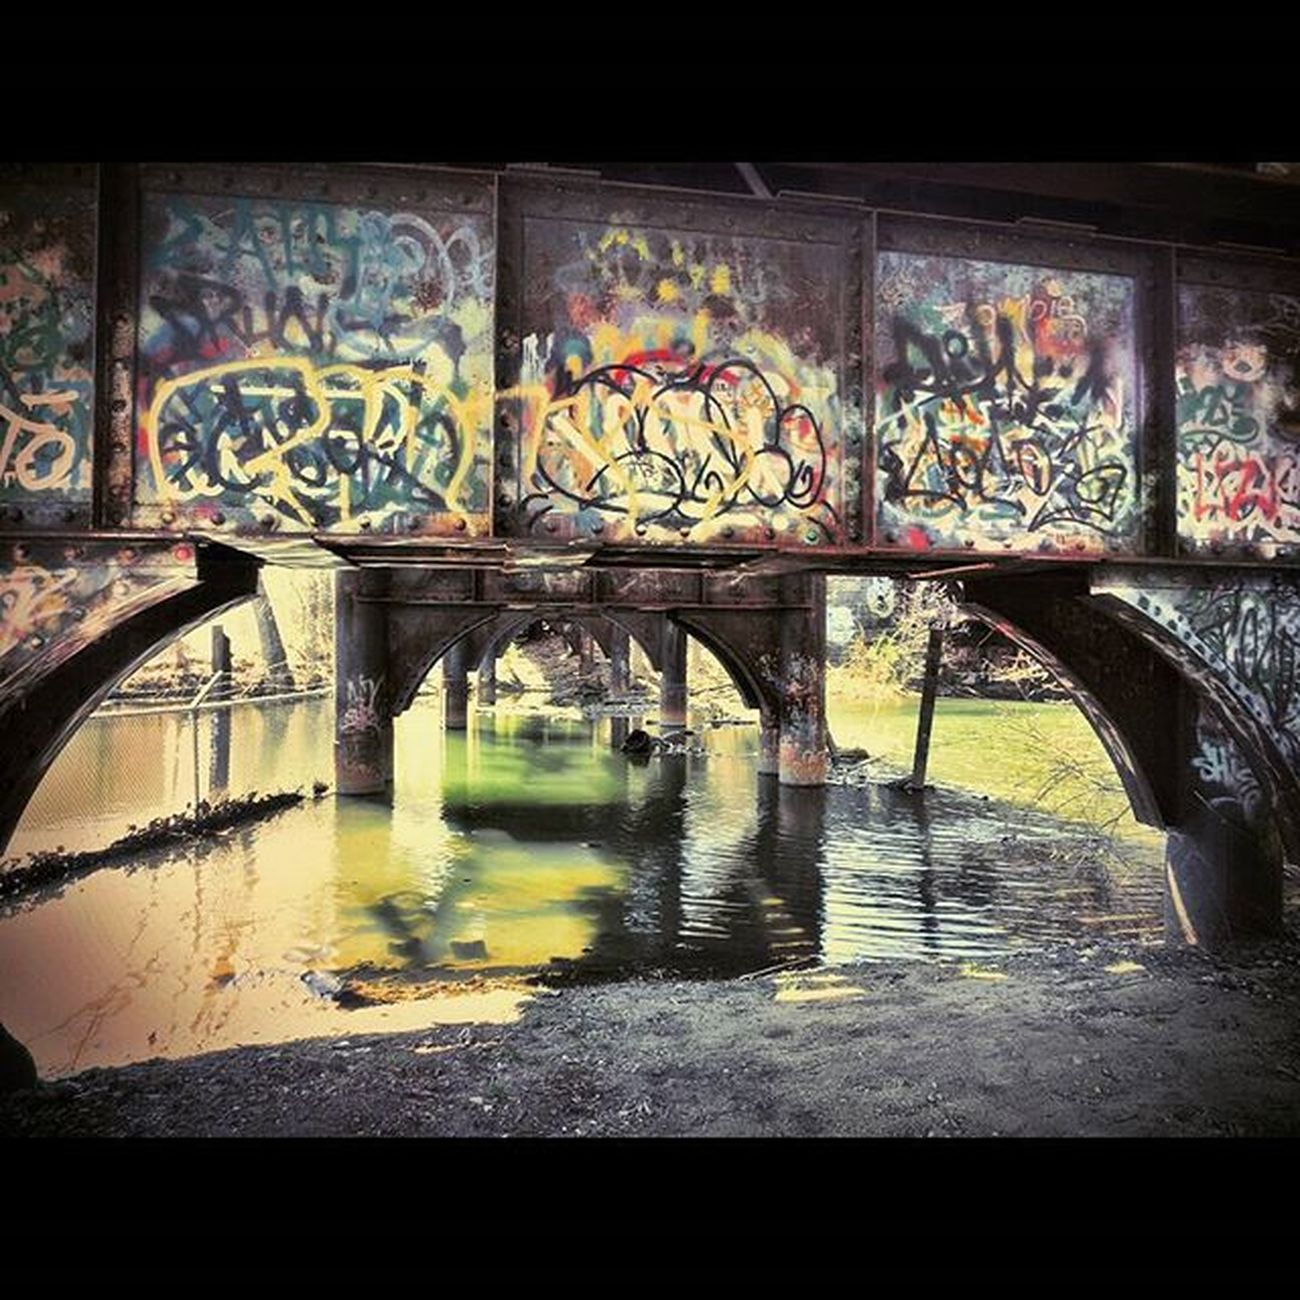 Filtered (w/ Pixlr ) view under a railroad bridge in Pittsfield, MA. : : Pittsfield PittsfieldMA IntheBerkshires Berkshires Theberkshires Igers413 Igersnewengland Igersmass Urbanexploration Urbanabstractions Streetshooter Streetphotography RailRoadTracks Traintracks Railroad Industriallandscape Urbanlandscape ExploreEverything Newtopographics Yetmagazine Noicemag Onbooooooom Rentalmag Createdaily abstractphotography wanderlust picoftheday PhotoOfTheDay Overfiltered